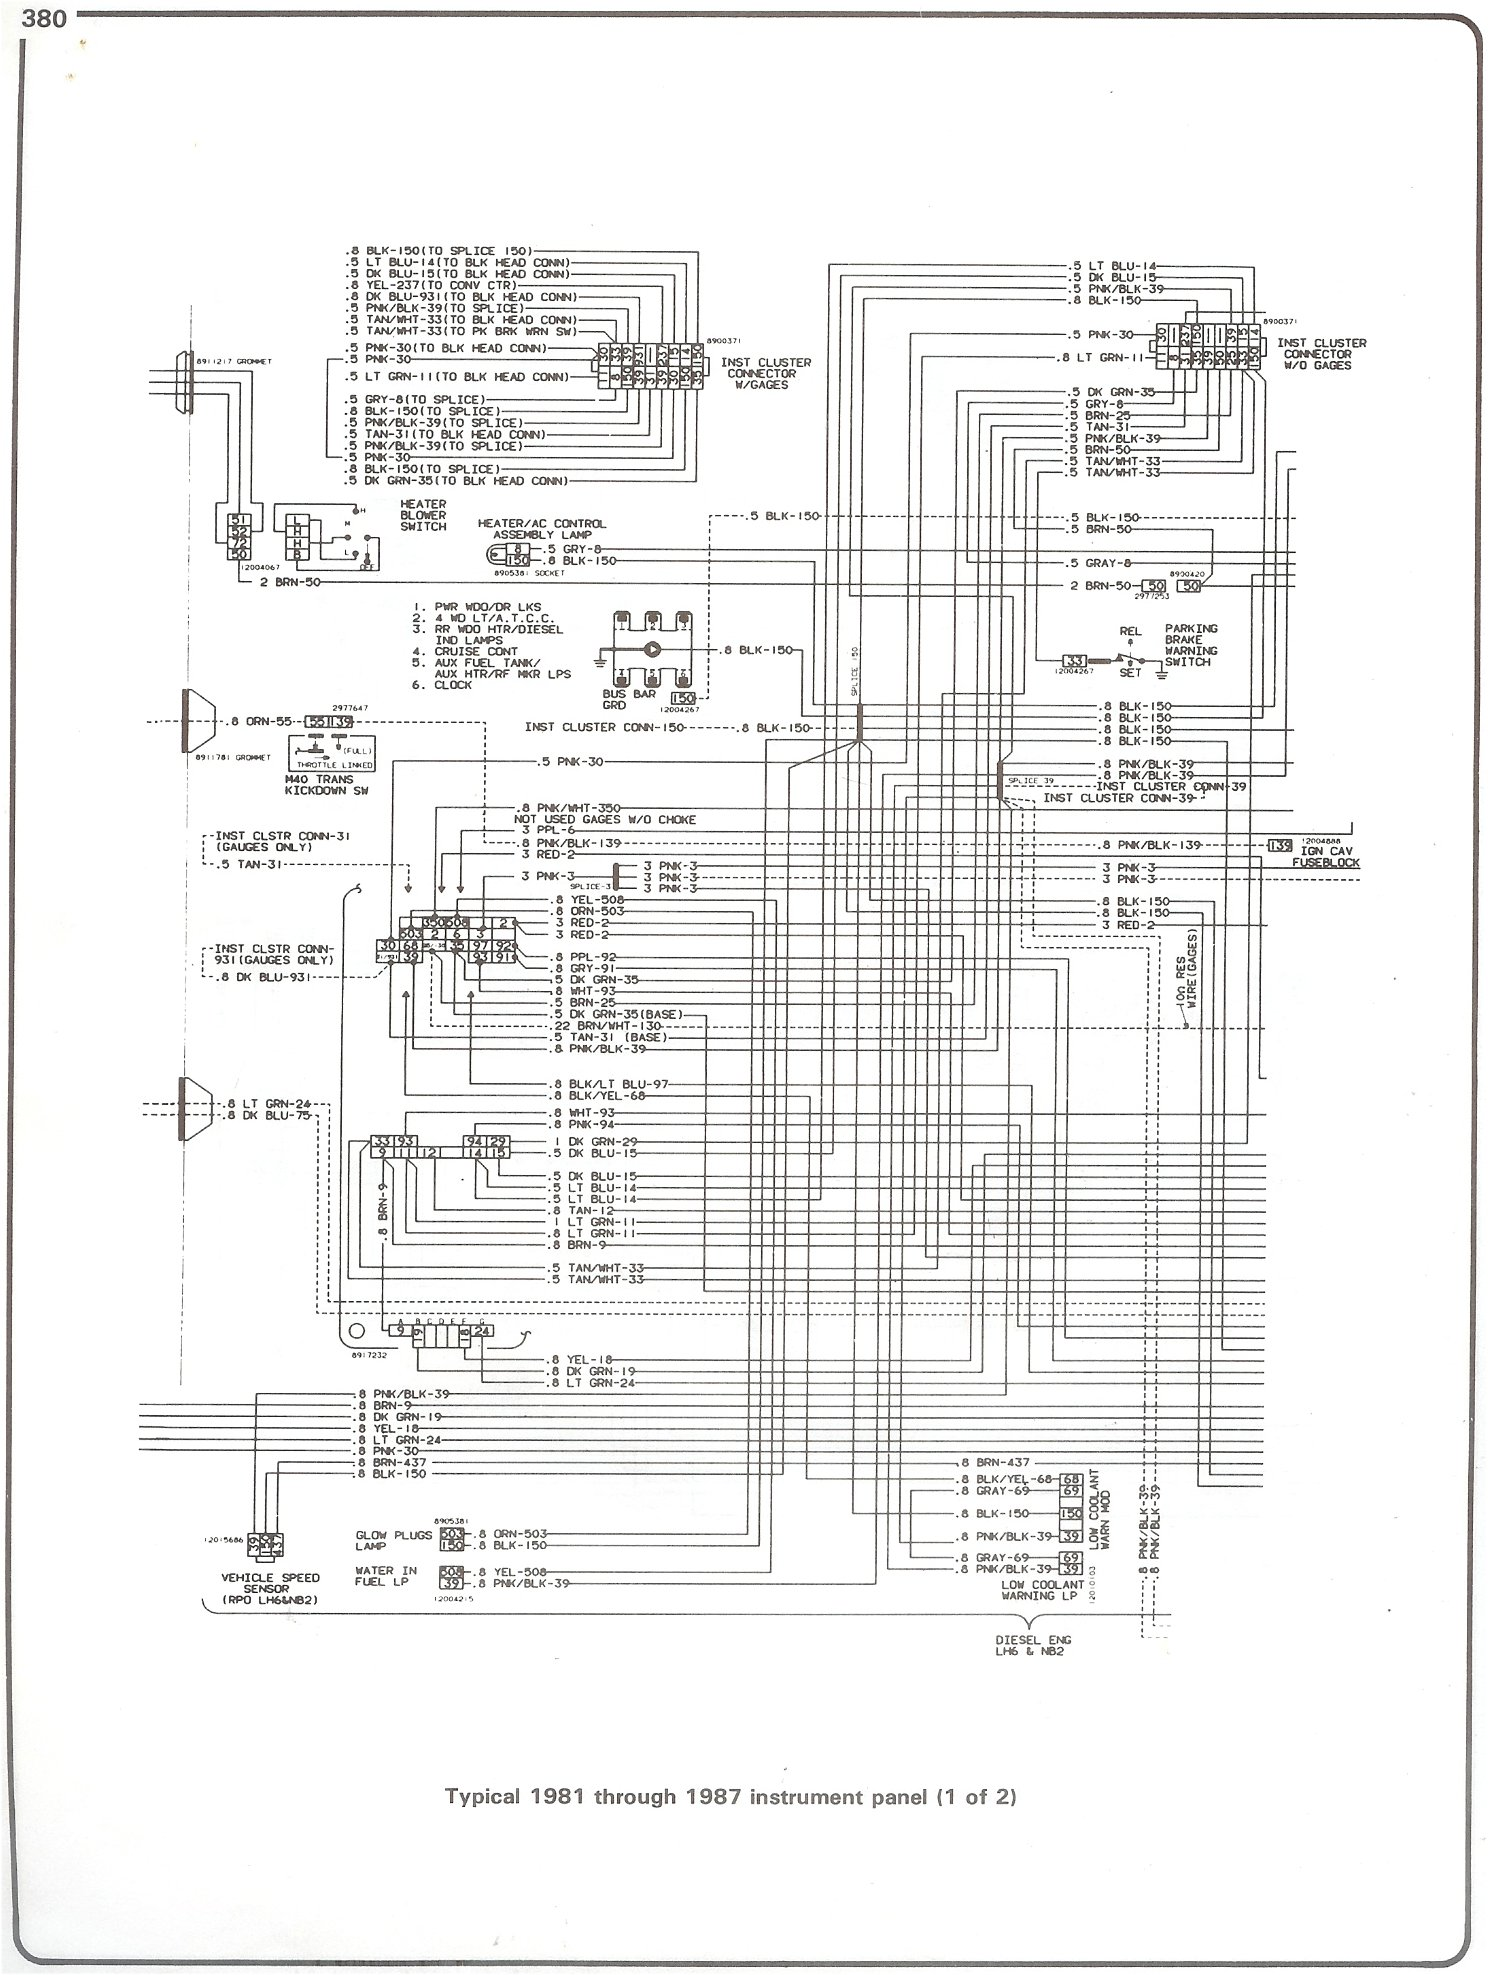 1986 gmc pickup wiring diagram complete 73 87 wiring diagrams 81 87 instrument panel page 1